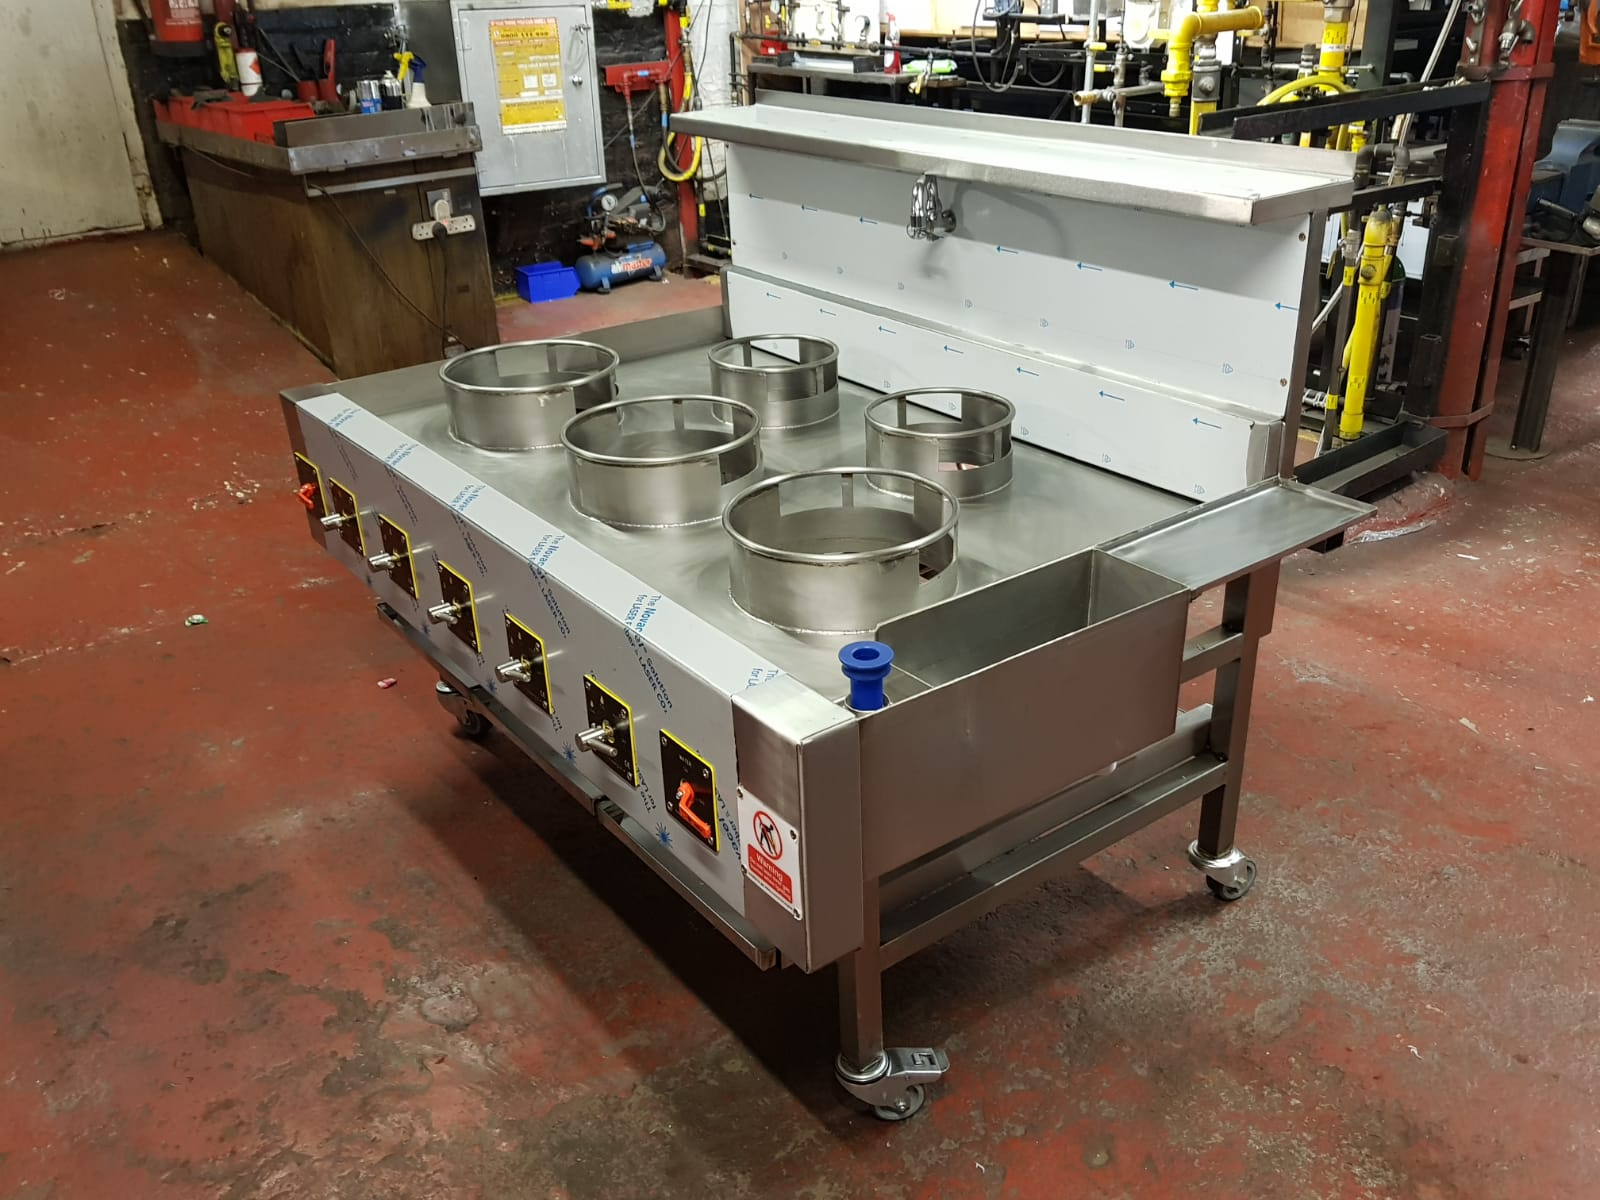 5 Burner Chinese / Thai Wok Cooker